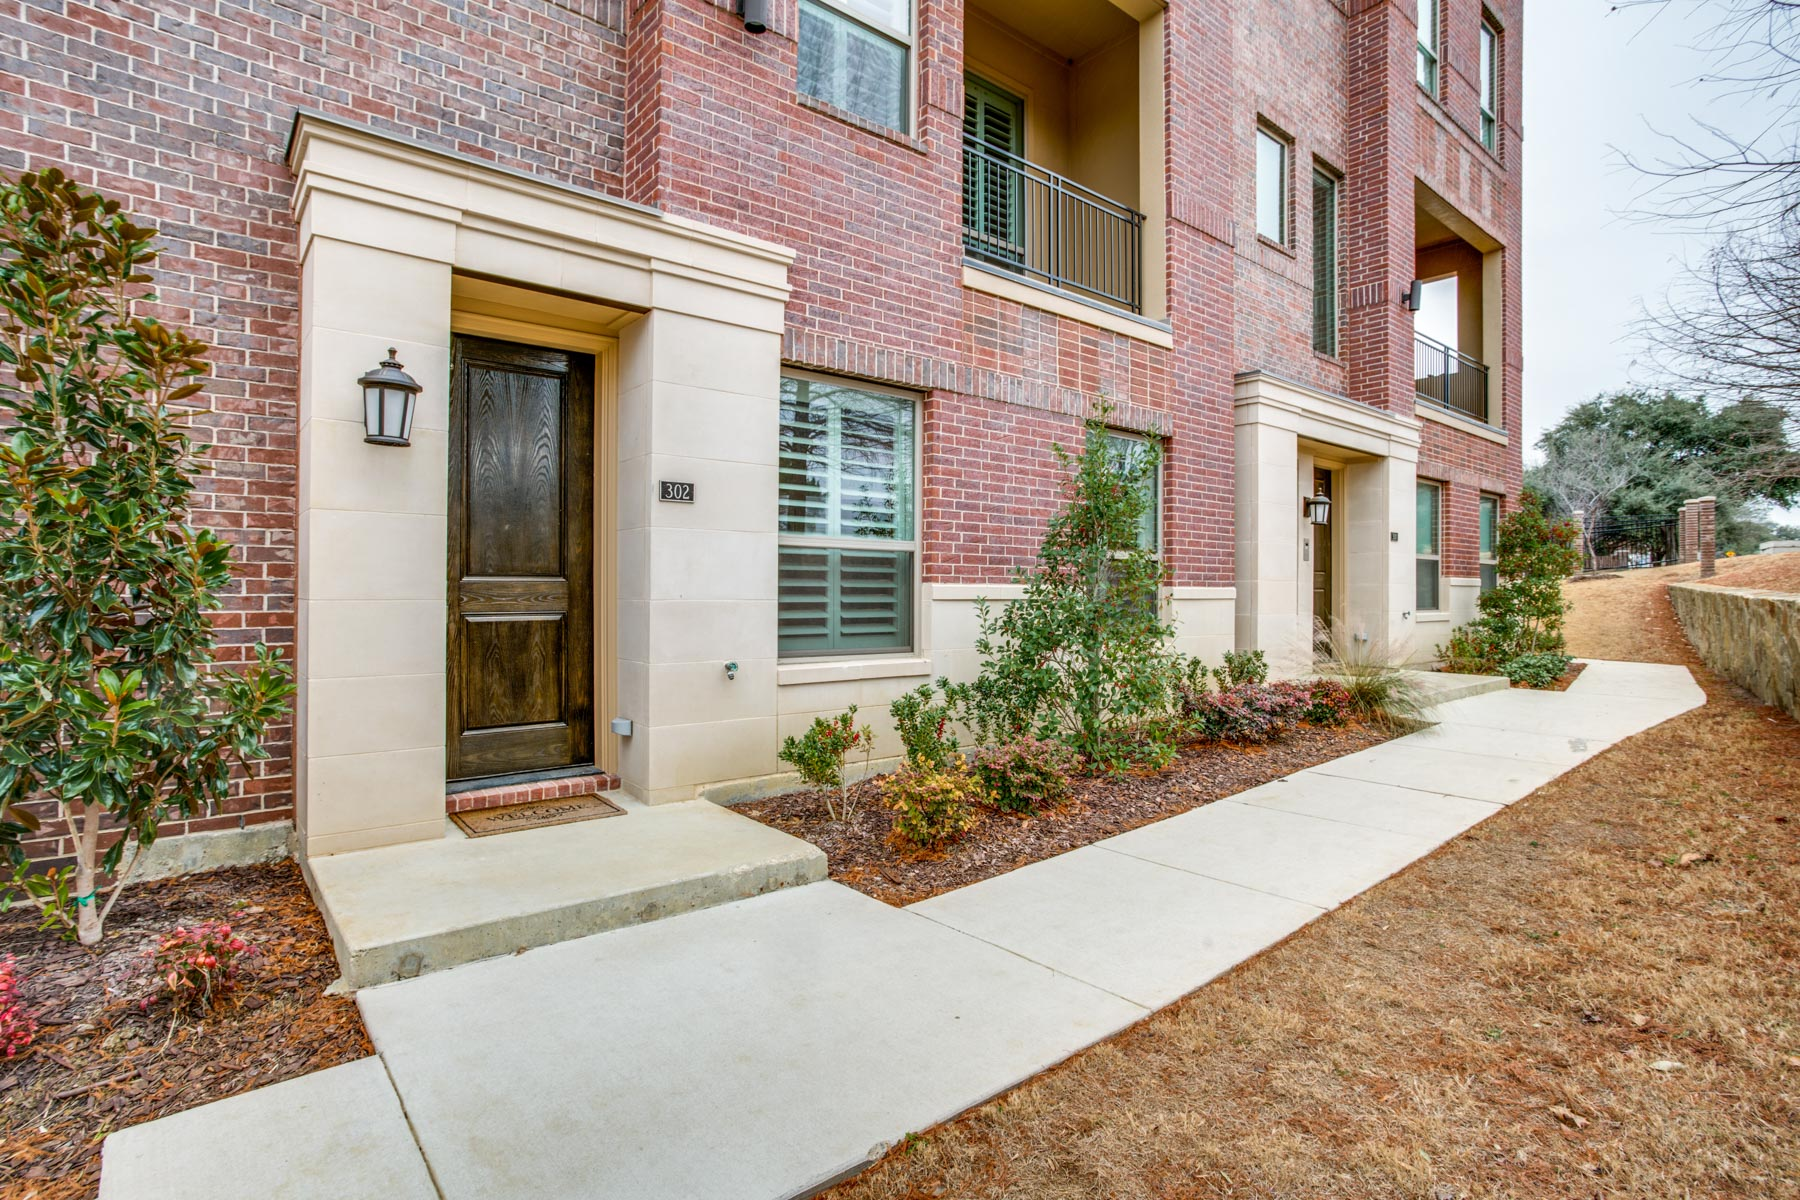 Condominium for Sale at Gated Brownstone 101 Decker Street #302, Irving, Texas, 75062 United States